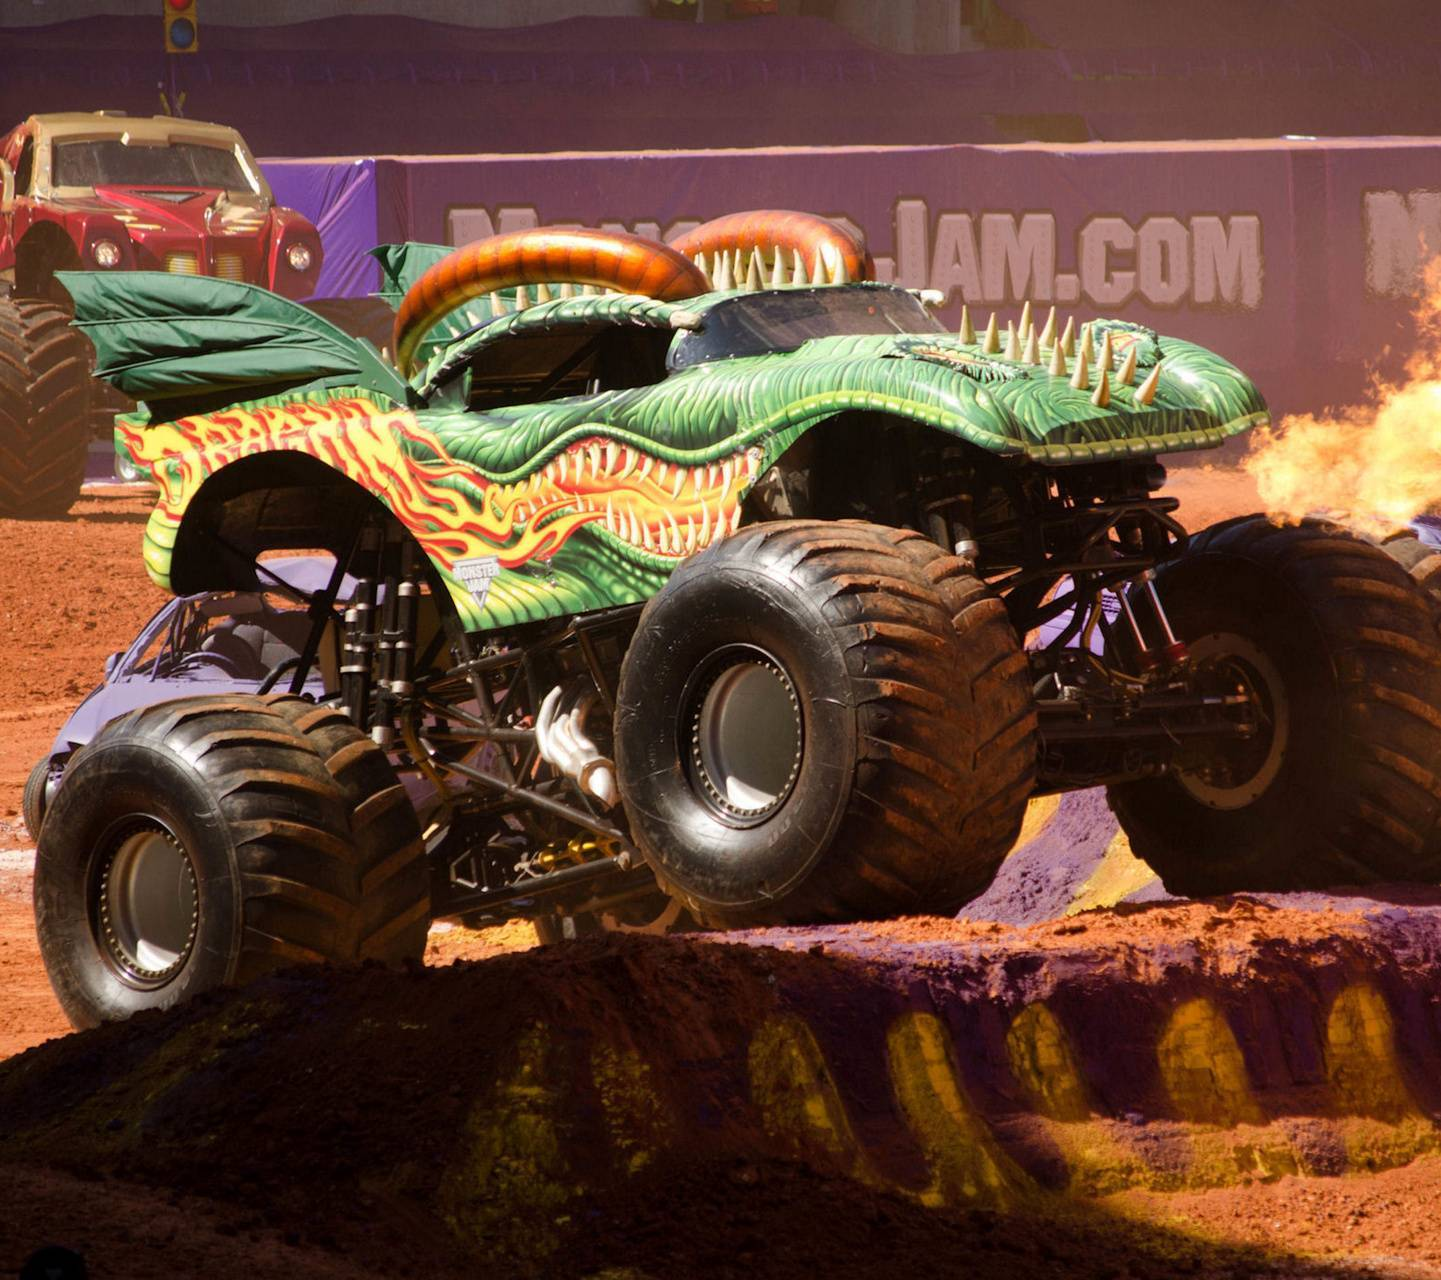 Dragon Monster Truck Wallpaper By Nicolotamion E6 Free On Zedge